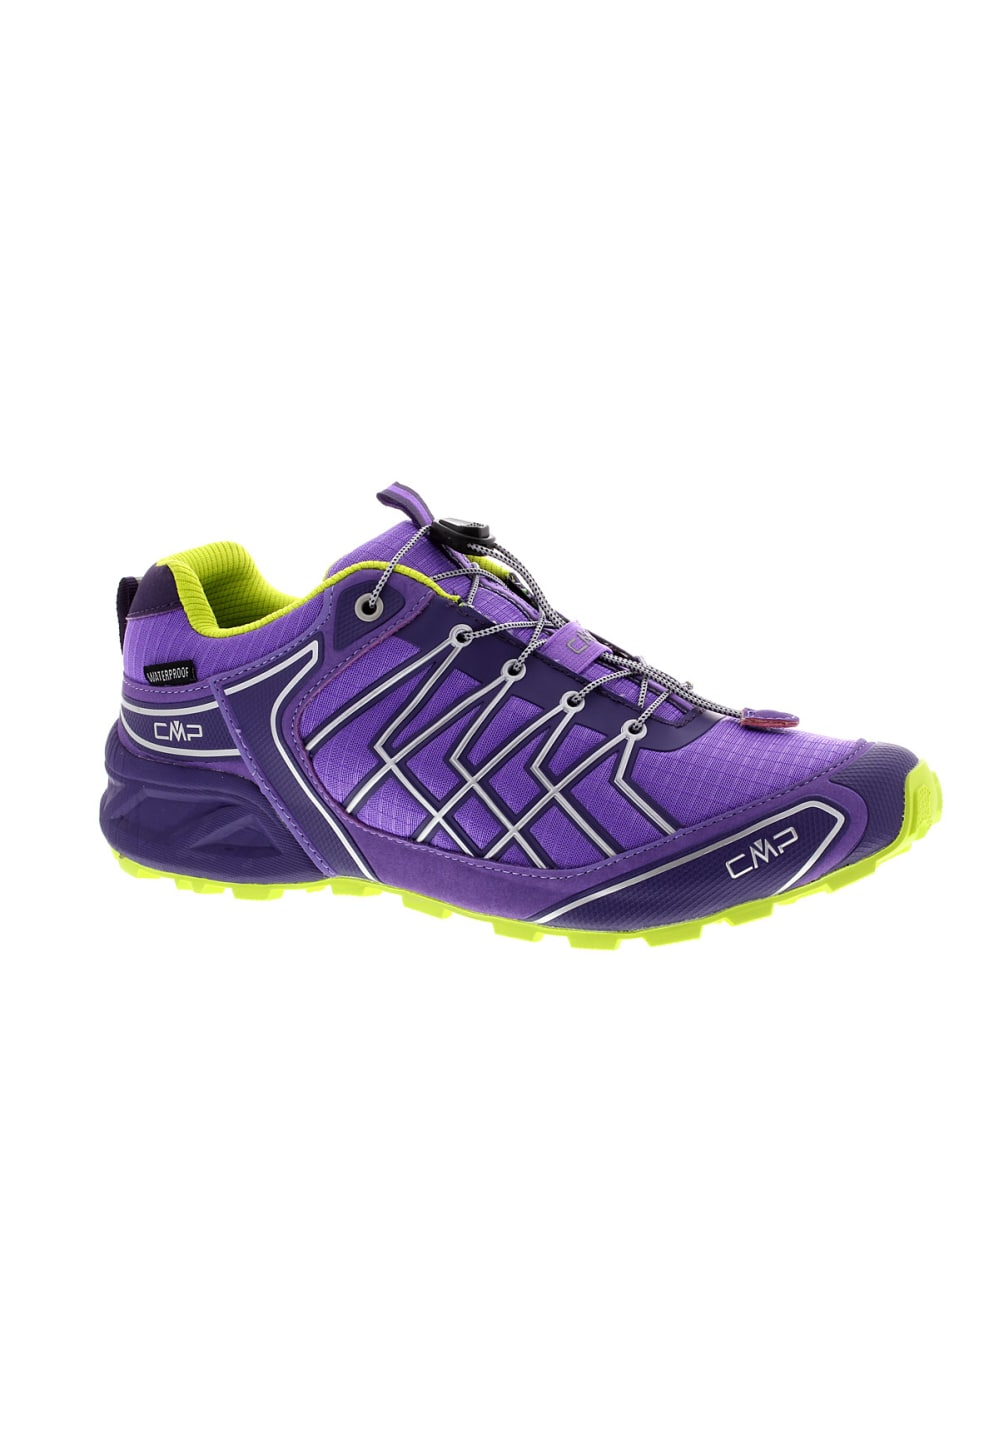 Campagnolo Super X Trail - Chaussures running pour Femme - Violet